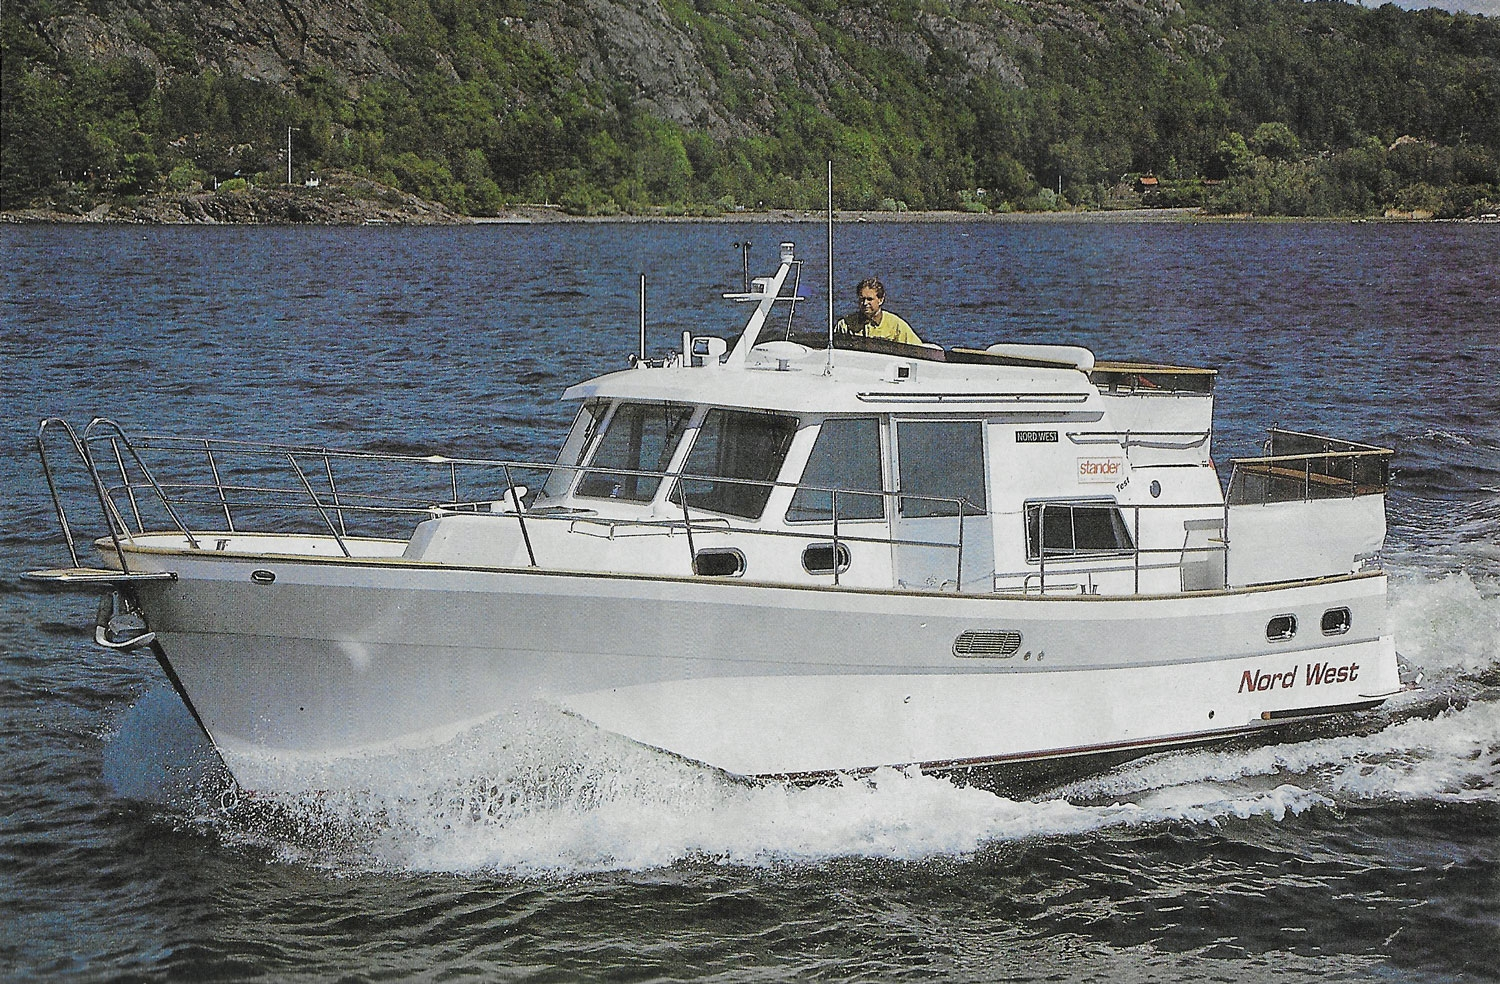 Nord West Trawler